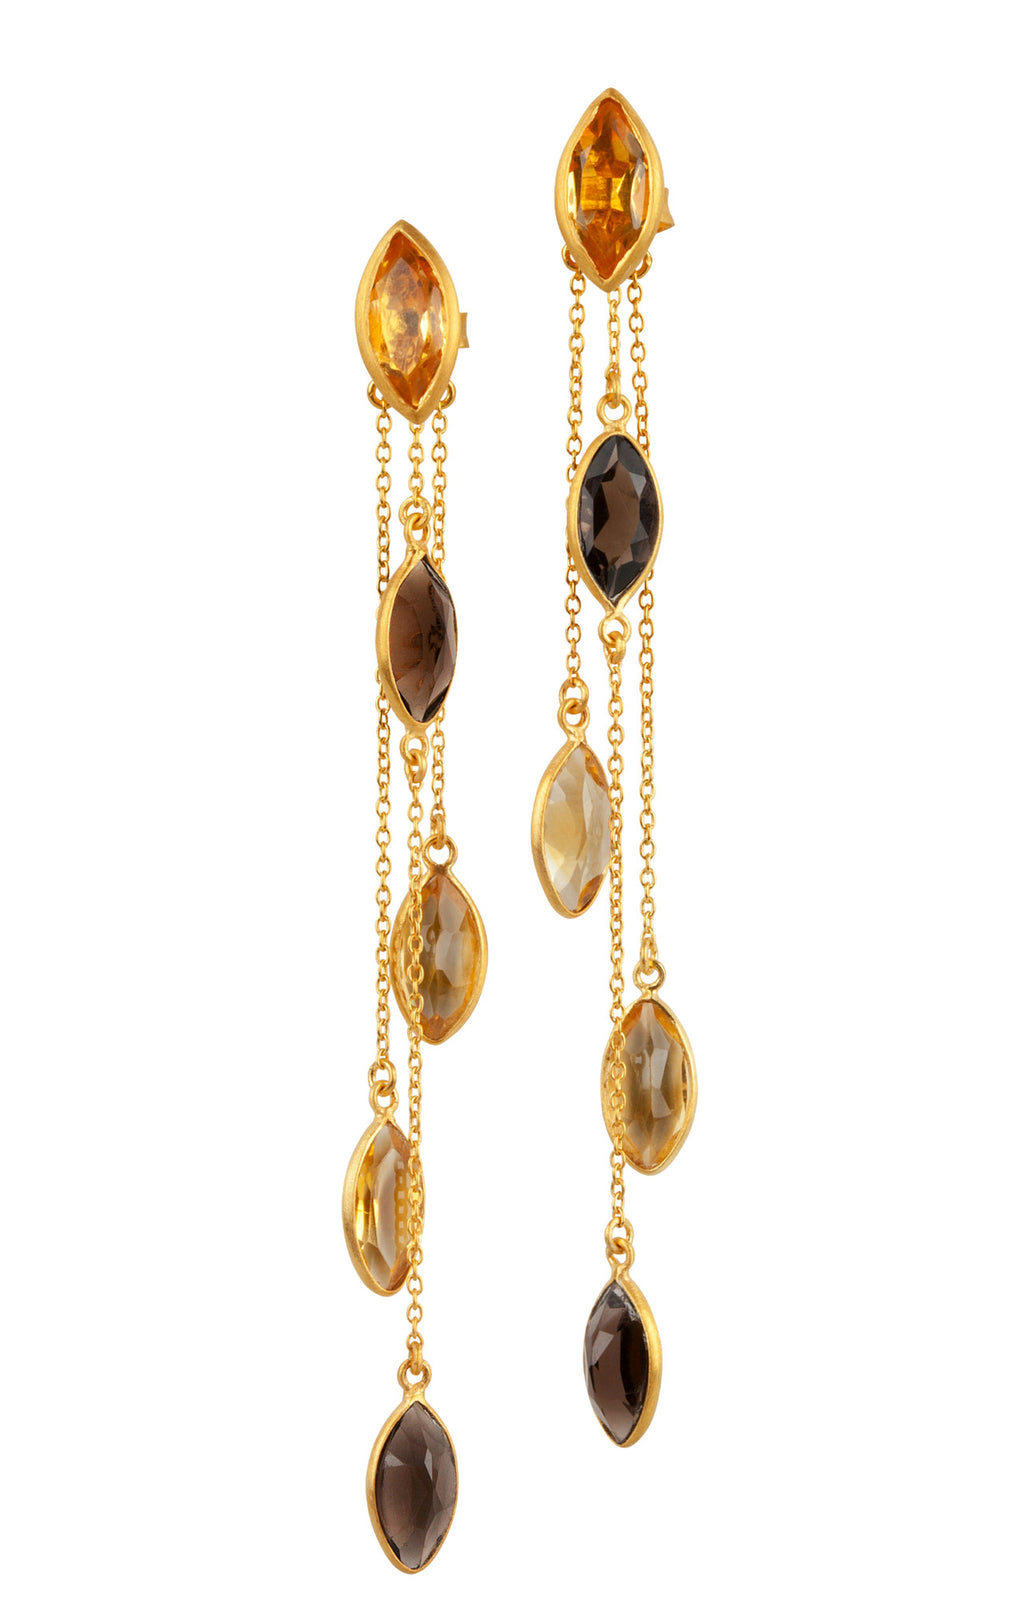 Citrine and Smoky Quartz Multiway Drop Earrings from the Willow Collection